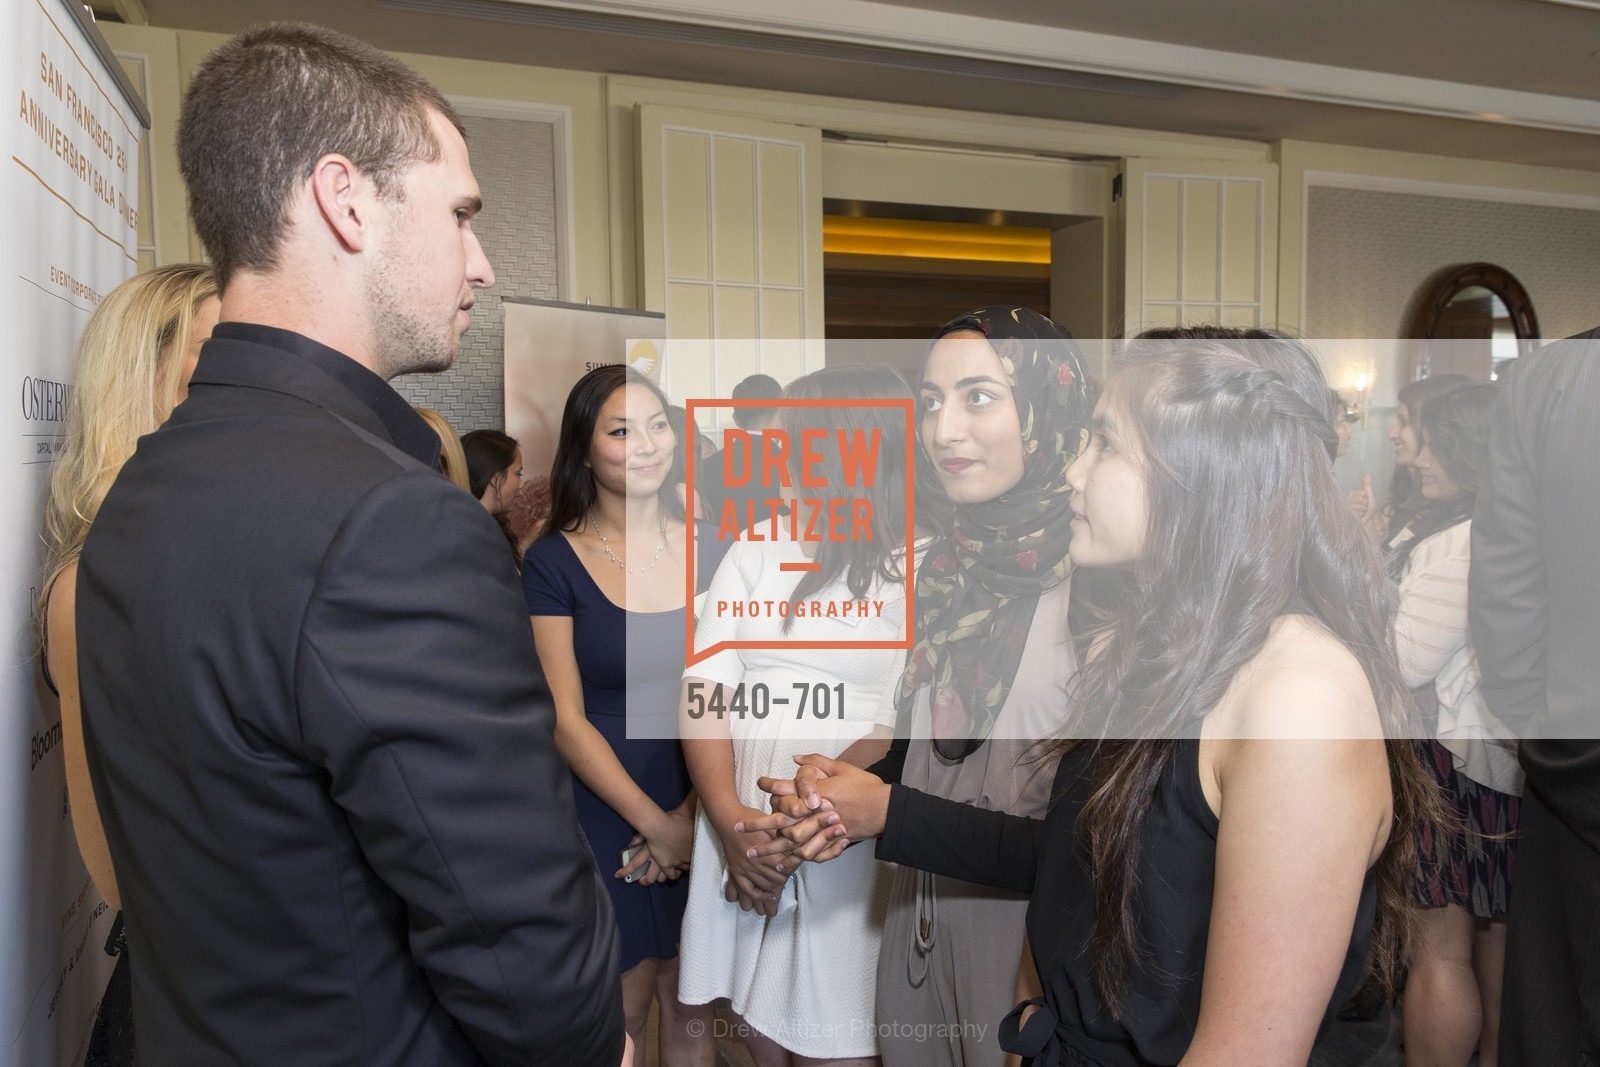 Buster Posey, Muriam Choudhery, SUMMER SEARCH San Francisco 25th Anniversary, US, May 7th, 2015,Drew Altizer, Drew Altizer Photography, full-service event agency, private events, San Francisco photographer, photographer California